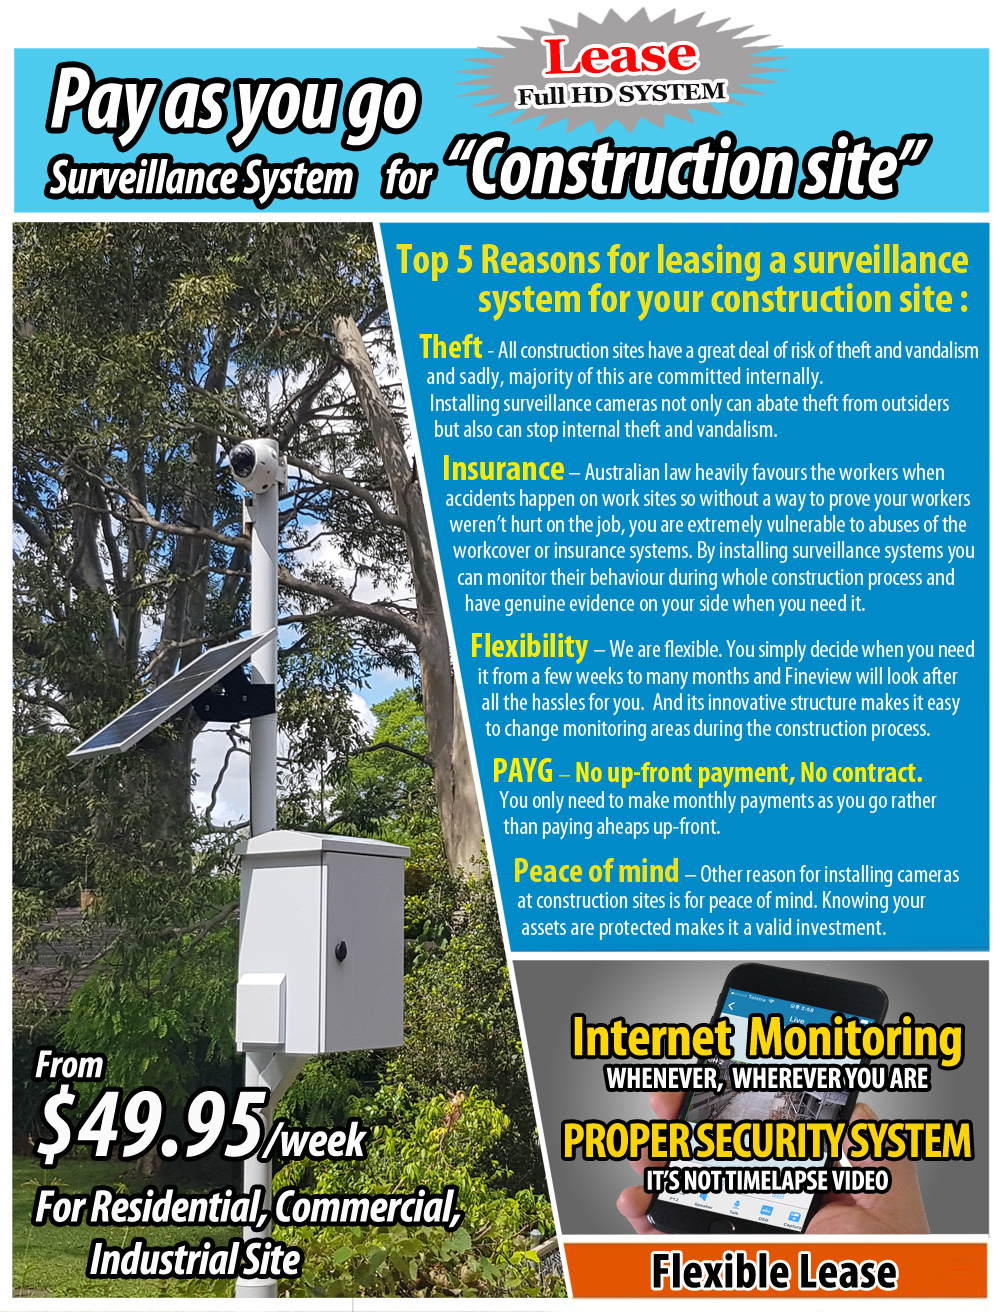 advanced wifi wireless home office full mobile control alarm system security alarm installation package in sydney